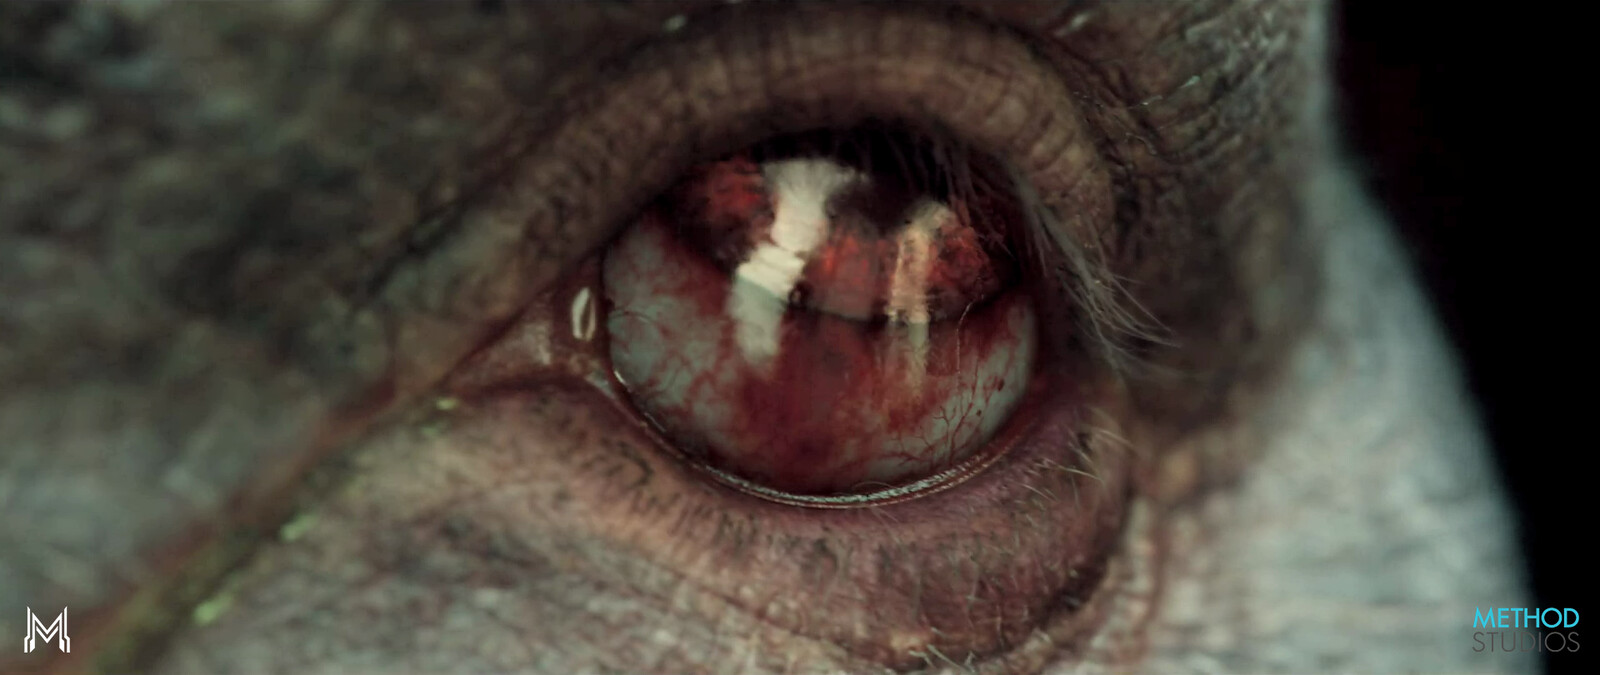 Modified existing textures by adding  burst veins and blood in Okja's eyes. Also some color retouch around the eyes for extra redness.